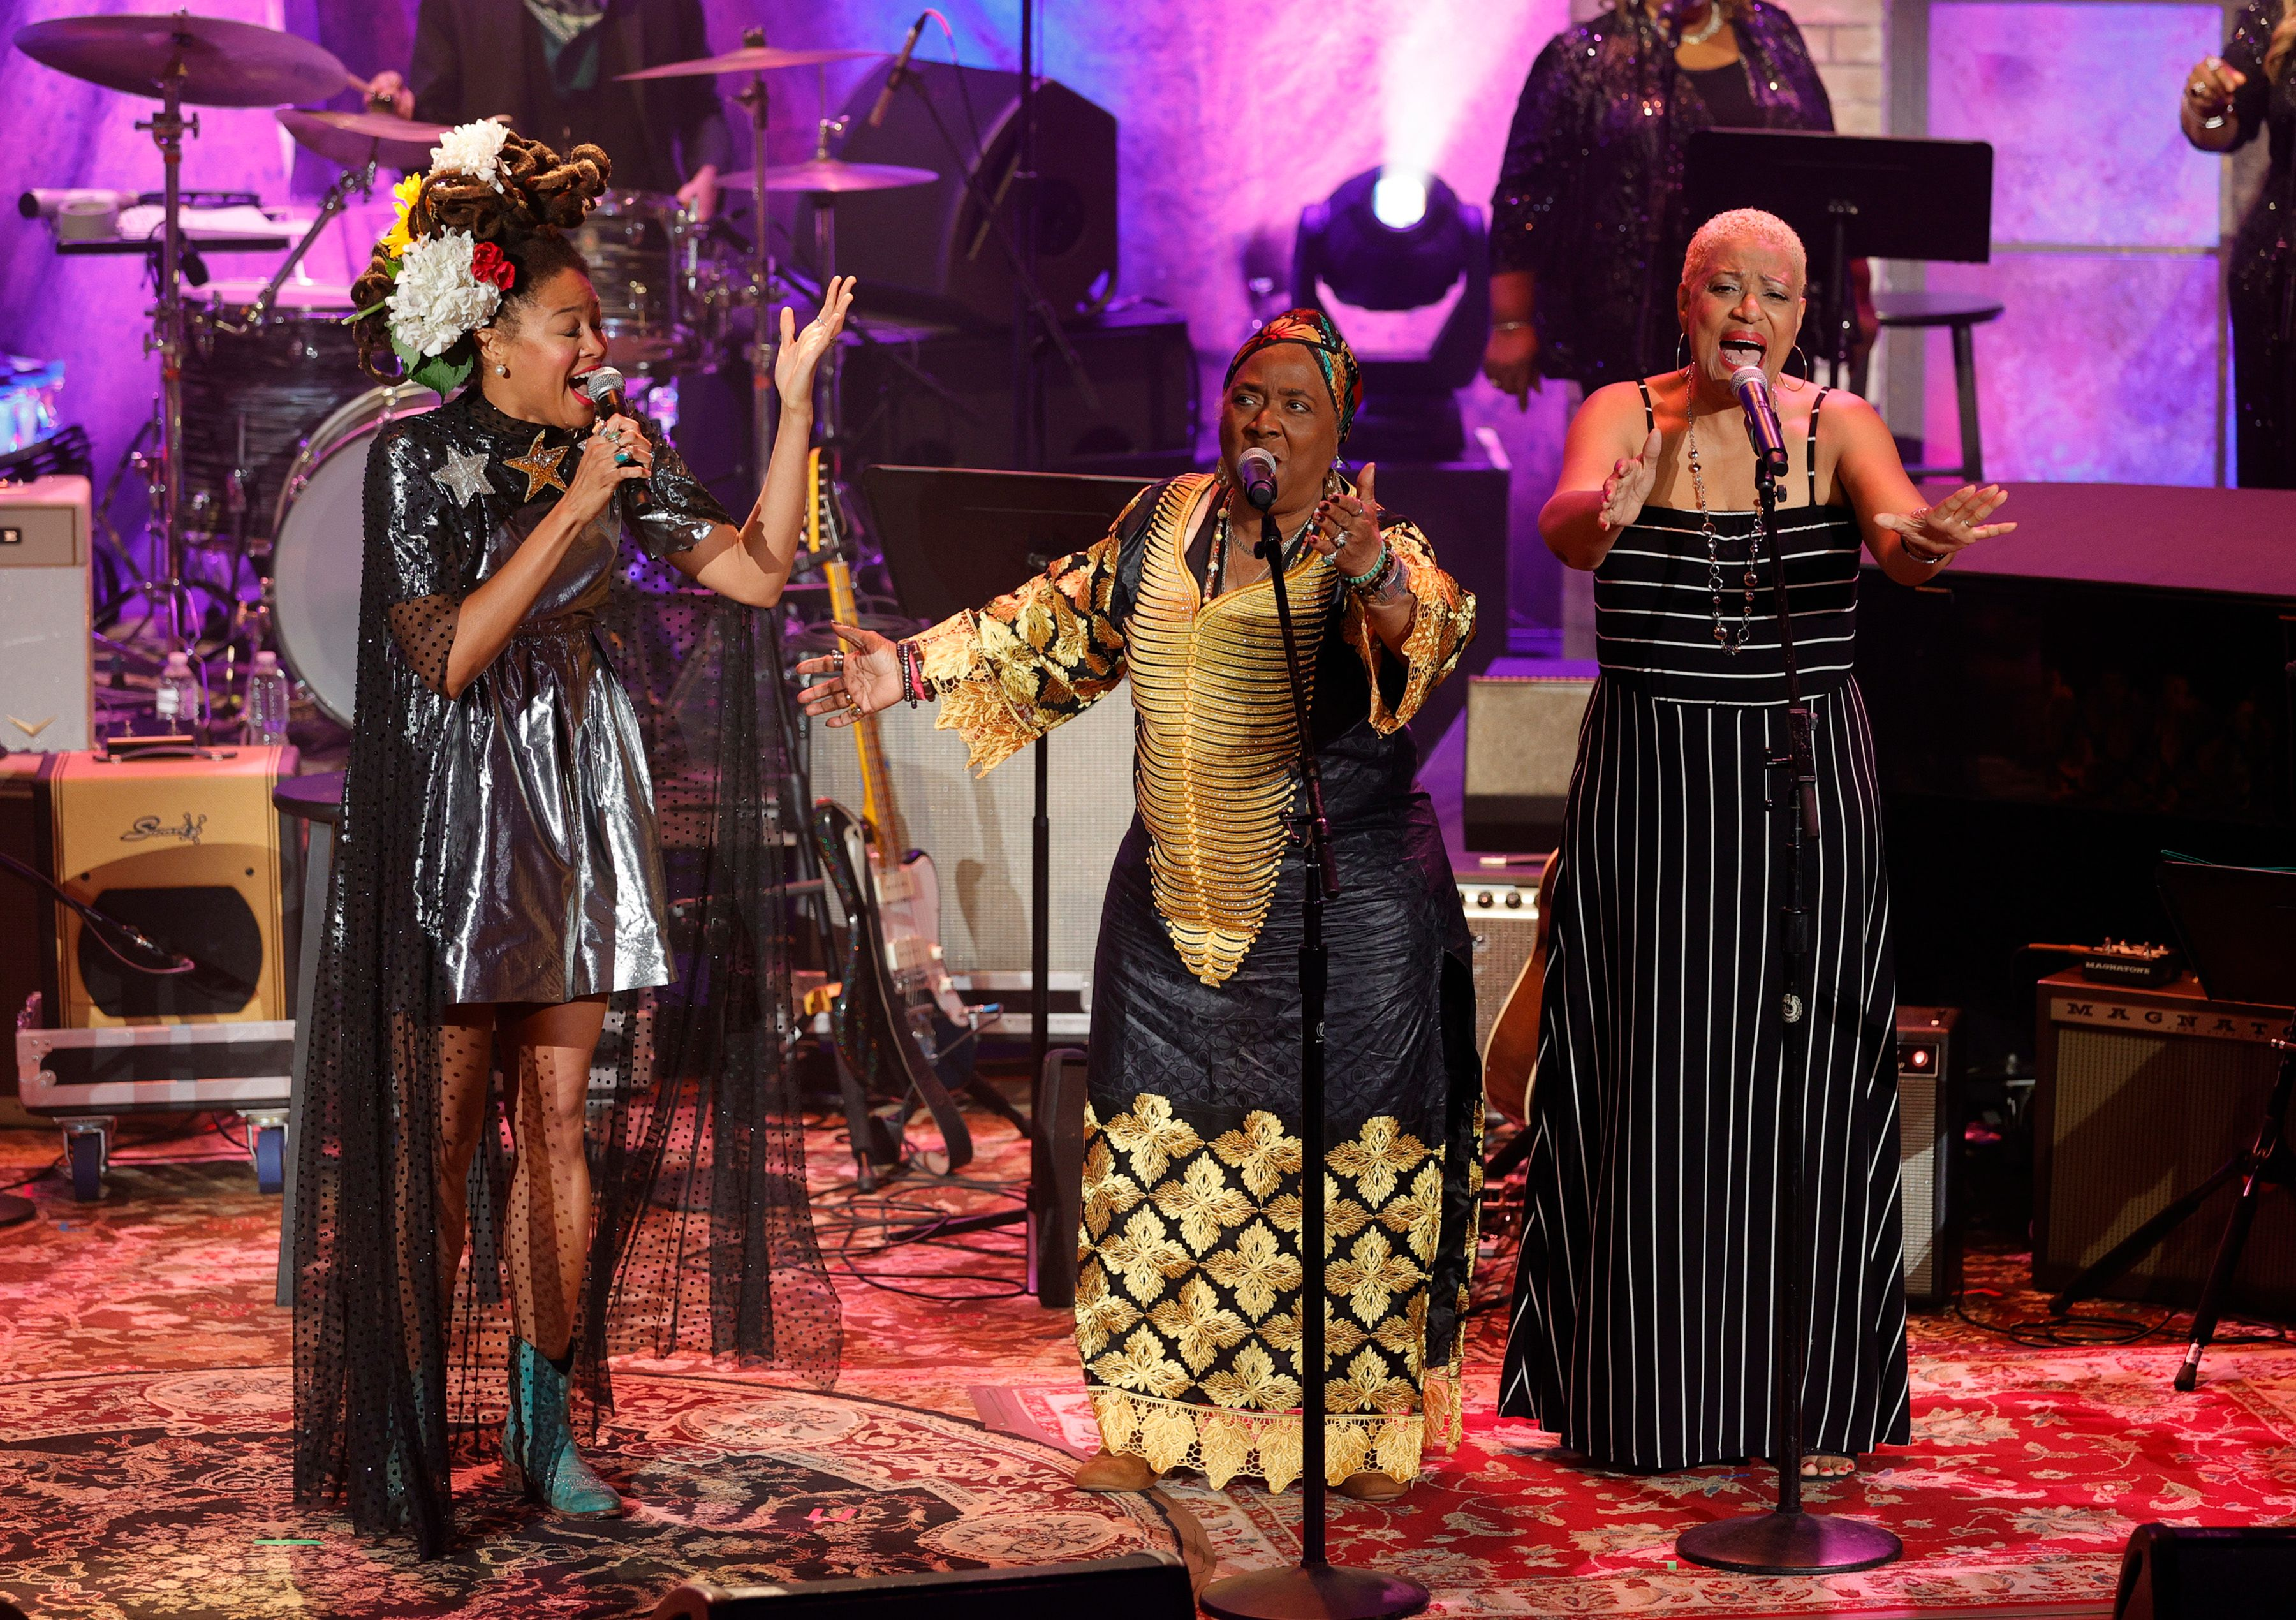 Valerie June, Carla Thomas and Vaneese Thomas by Jason Kempin / Getty Images